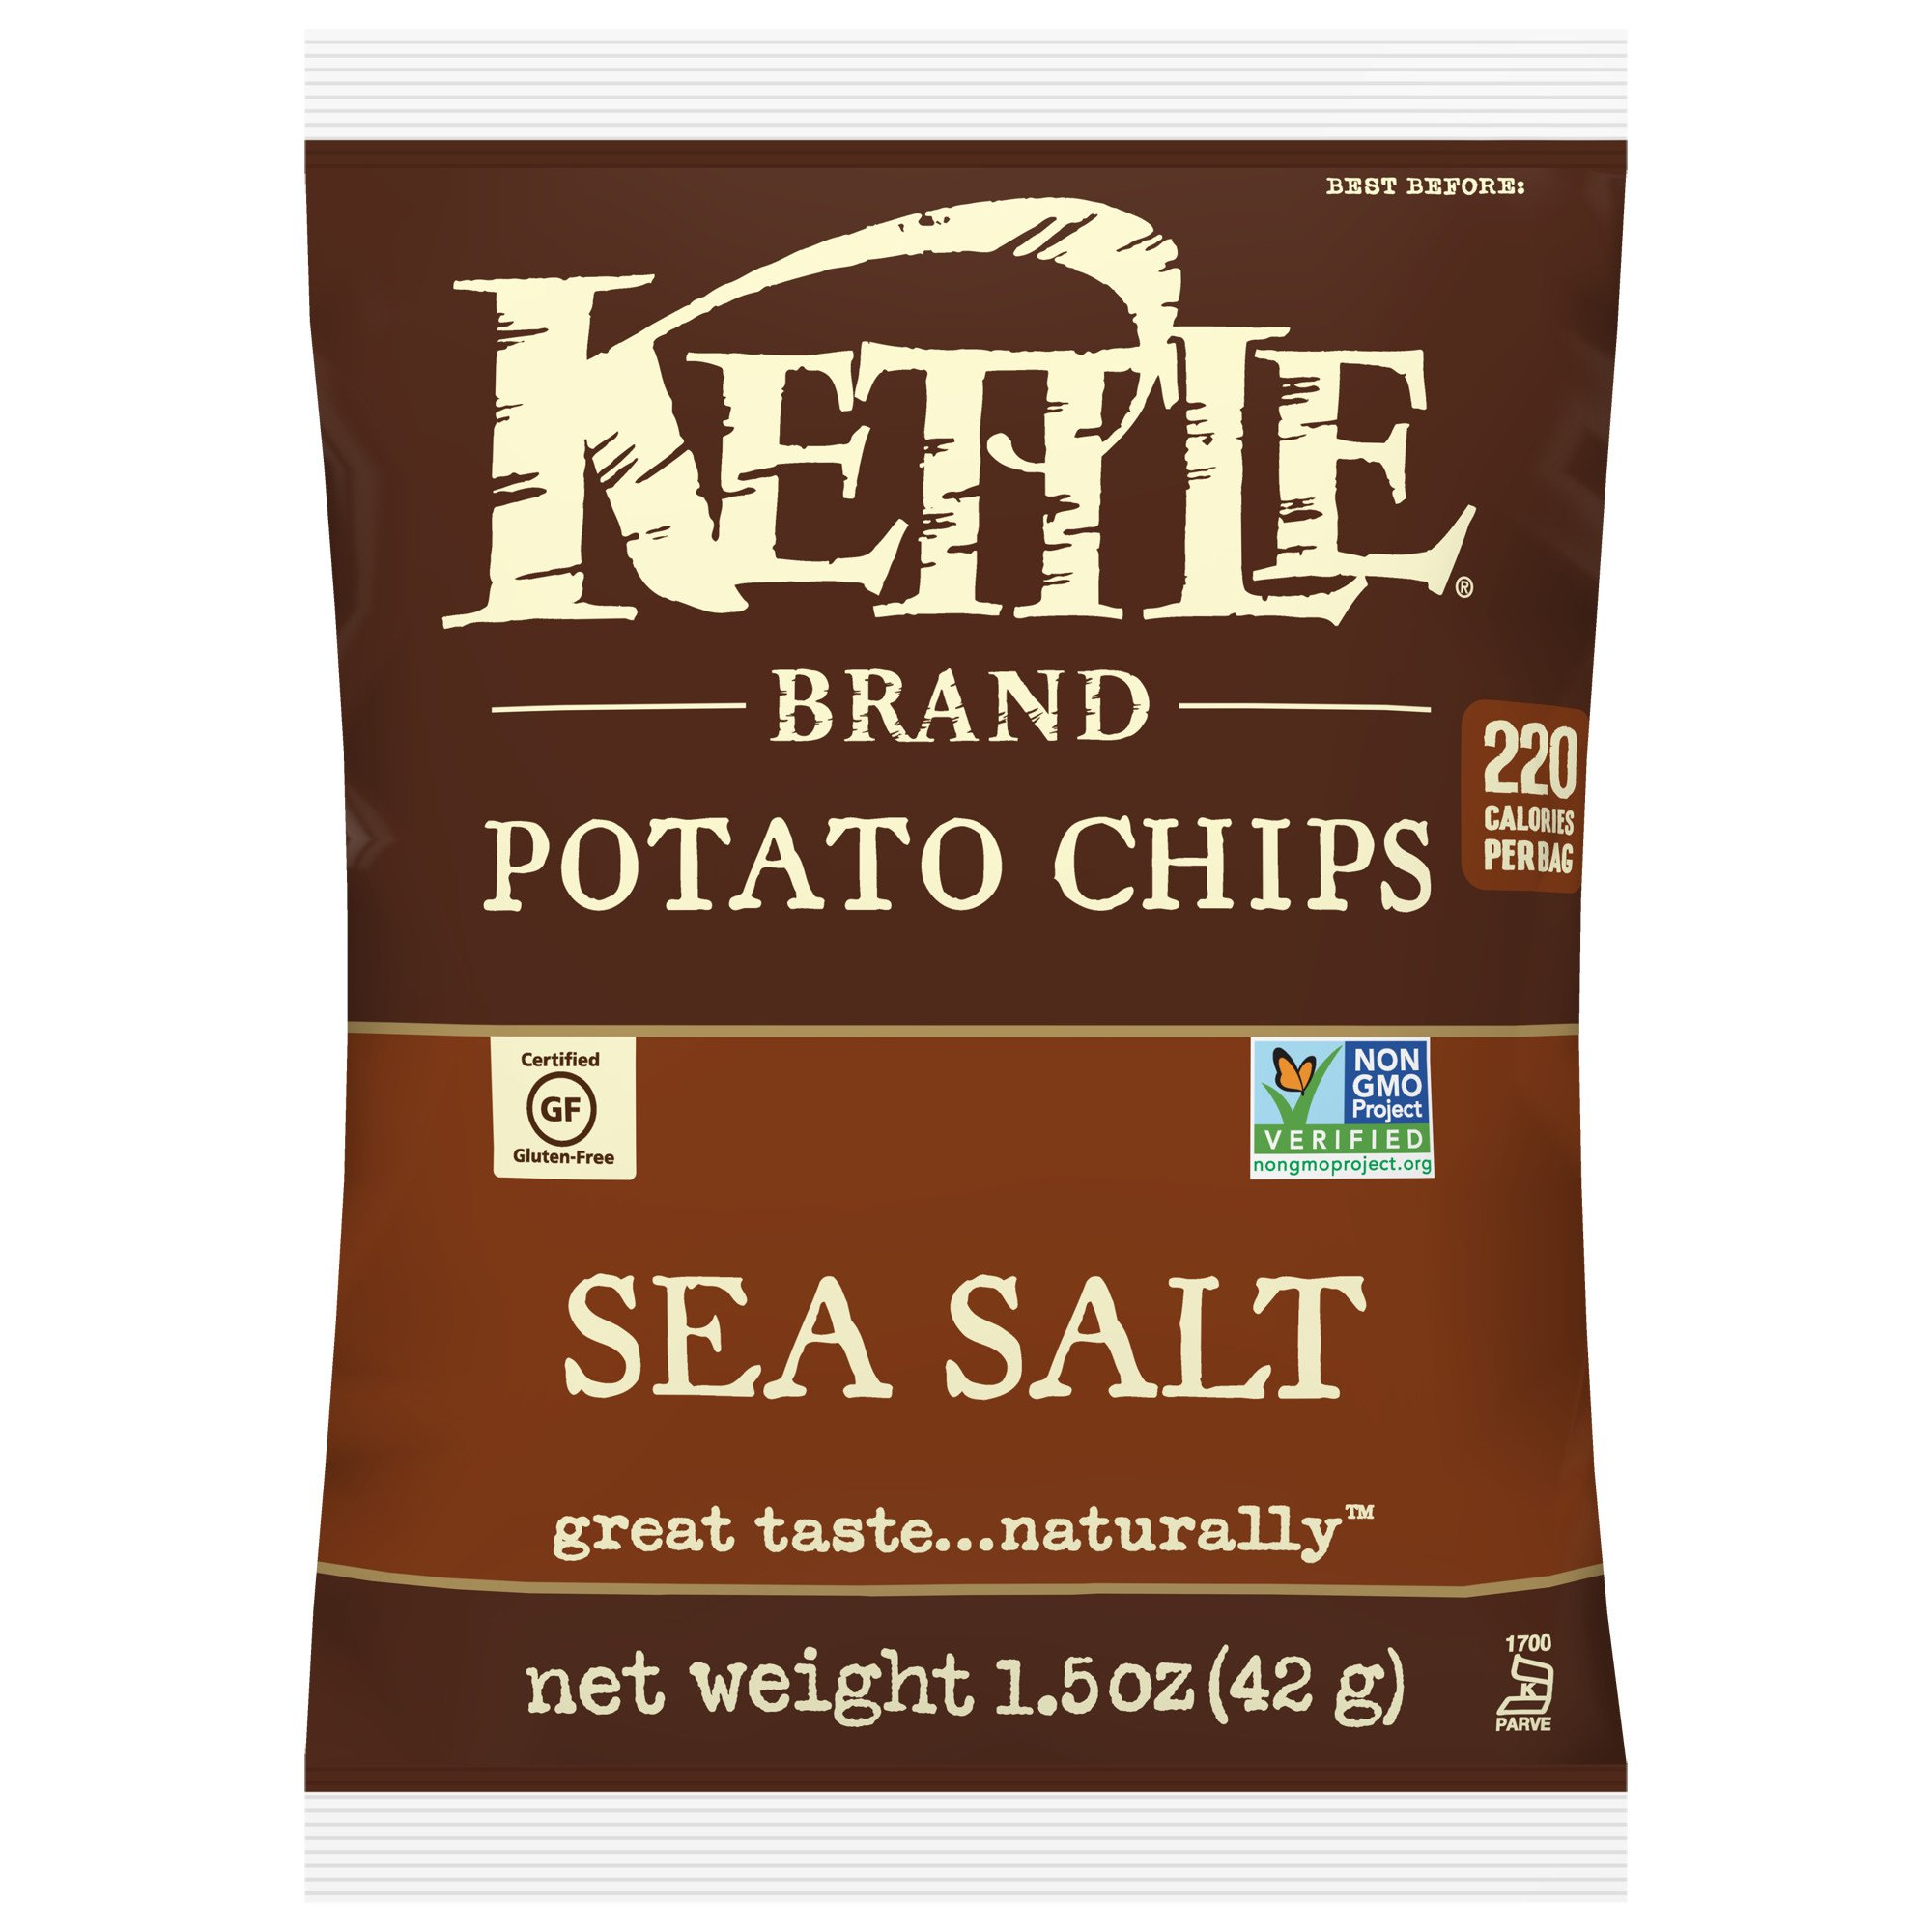 Kettle Brand Potato Chips, Sea Salt, Single-Serve 1.5 Ounce Bags (Pack of 24) by Kettle Brand